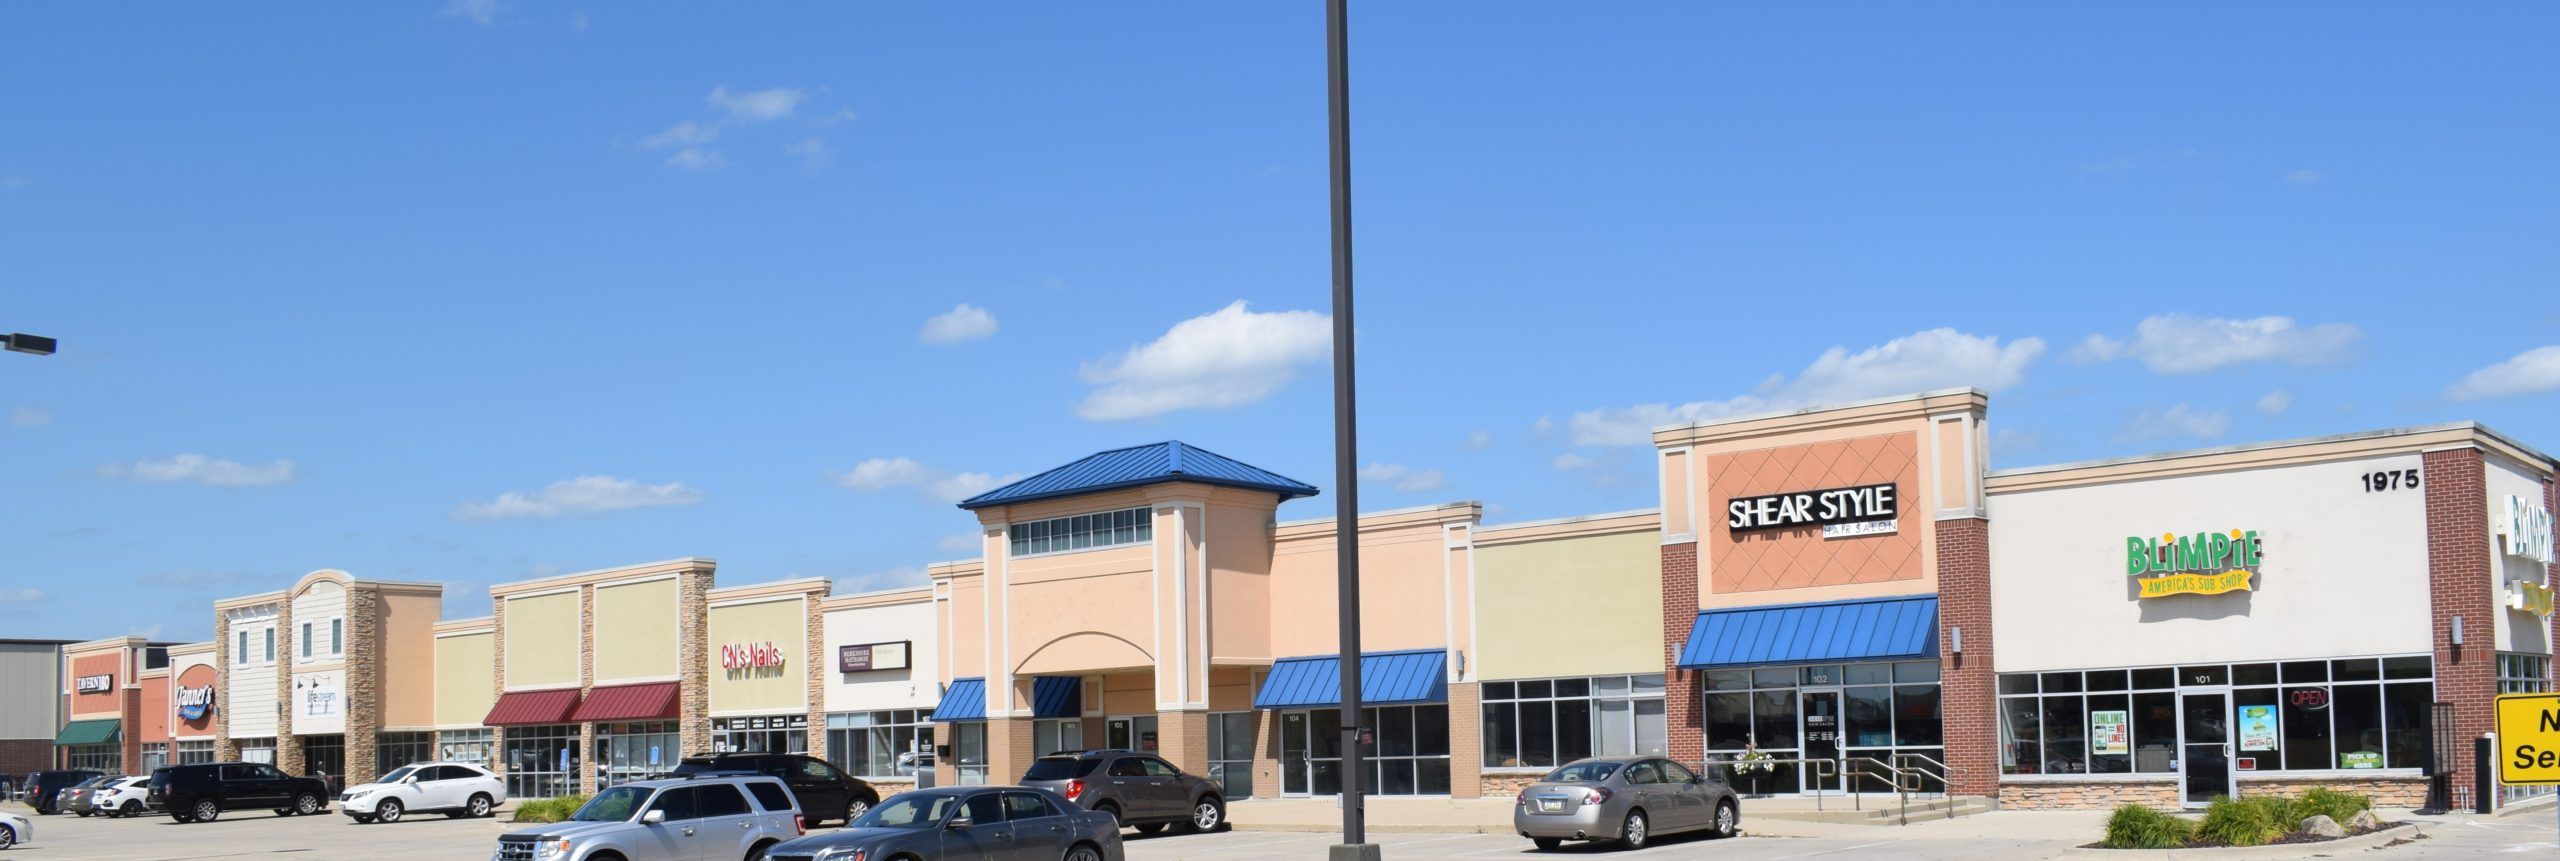 Georgetown Plaza Shopping Center – Off Market Property